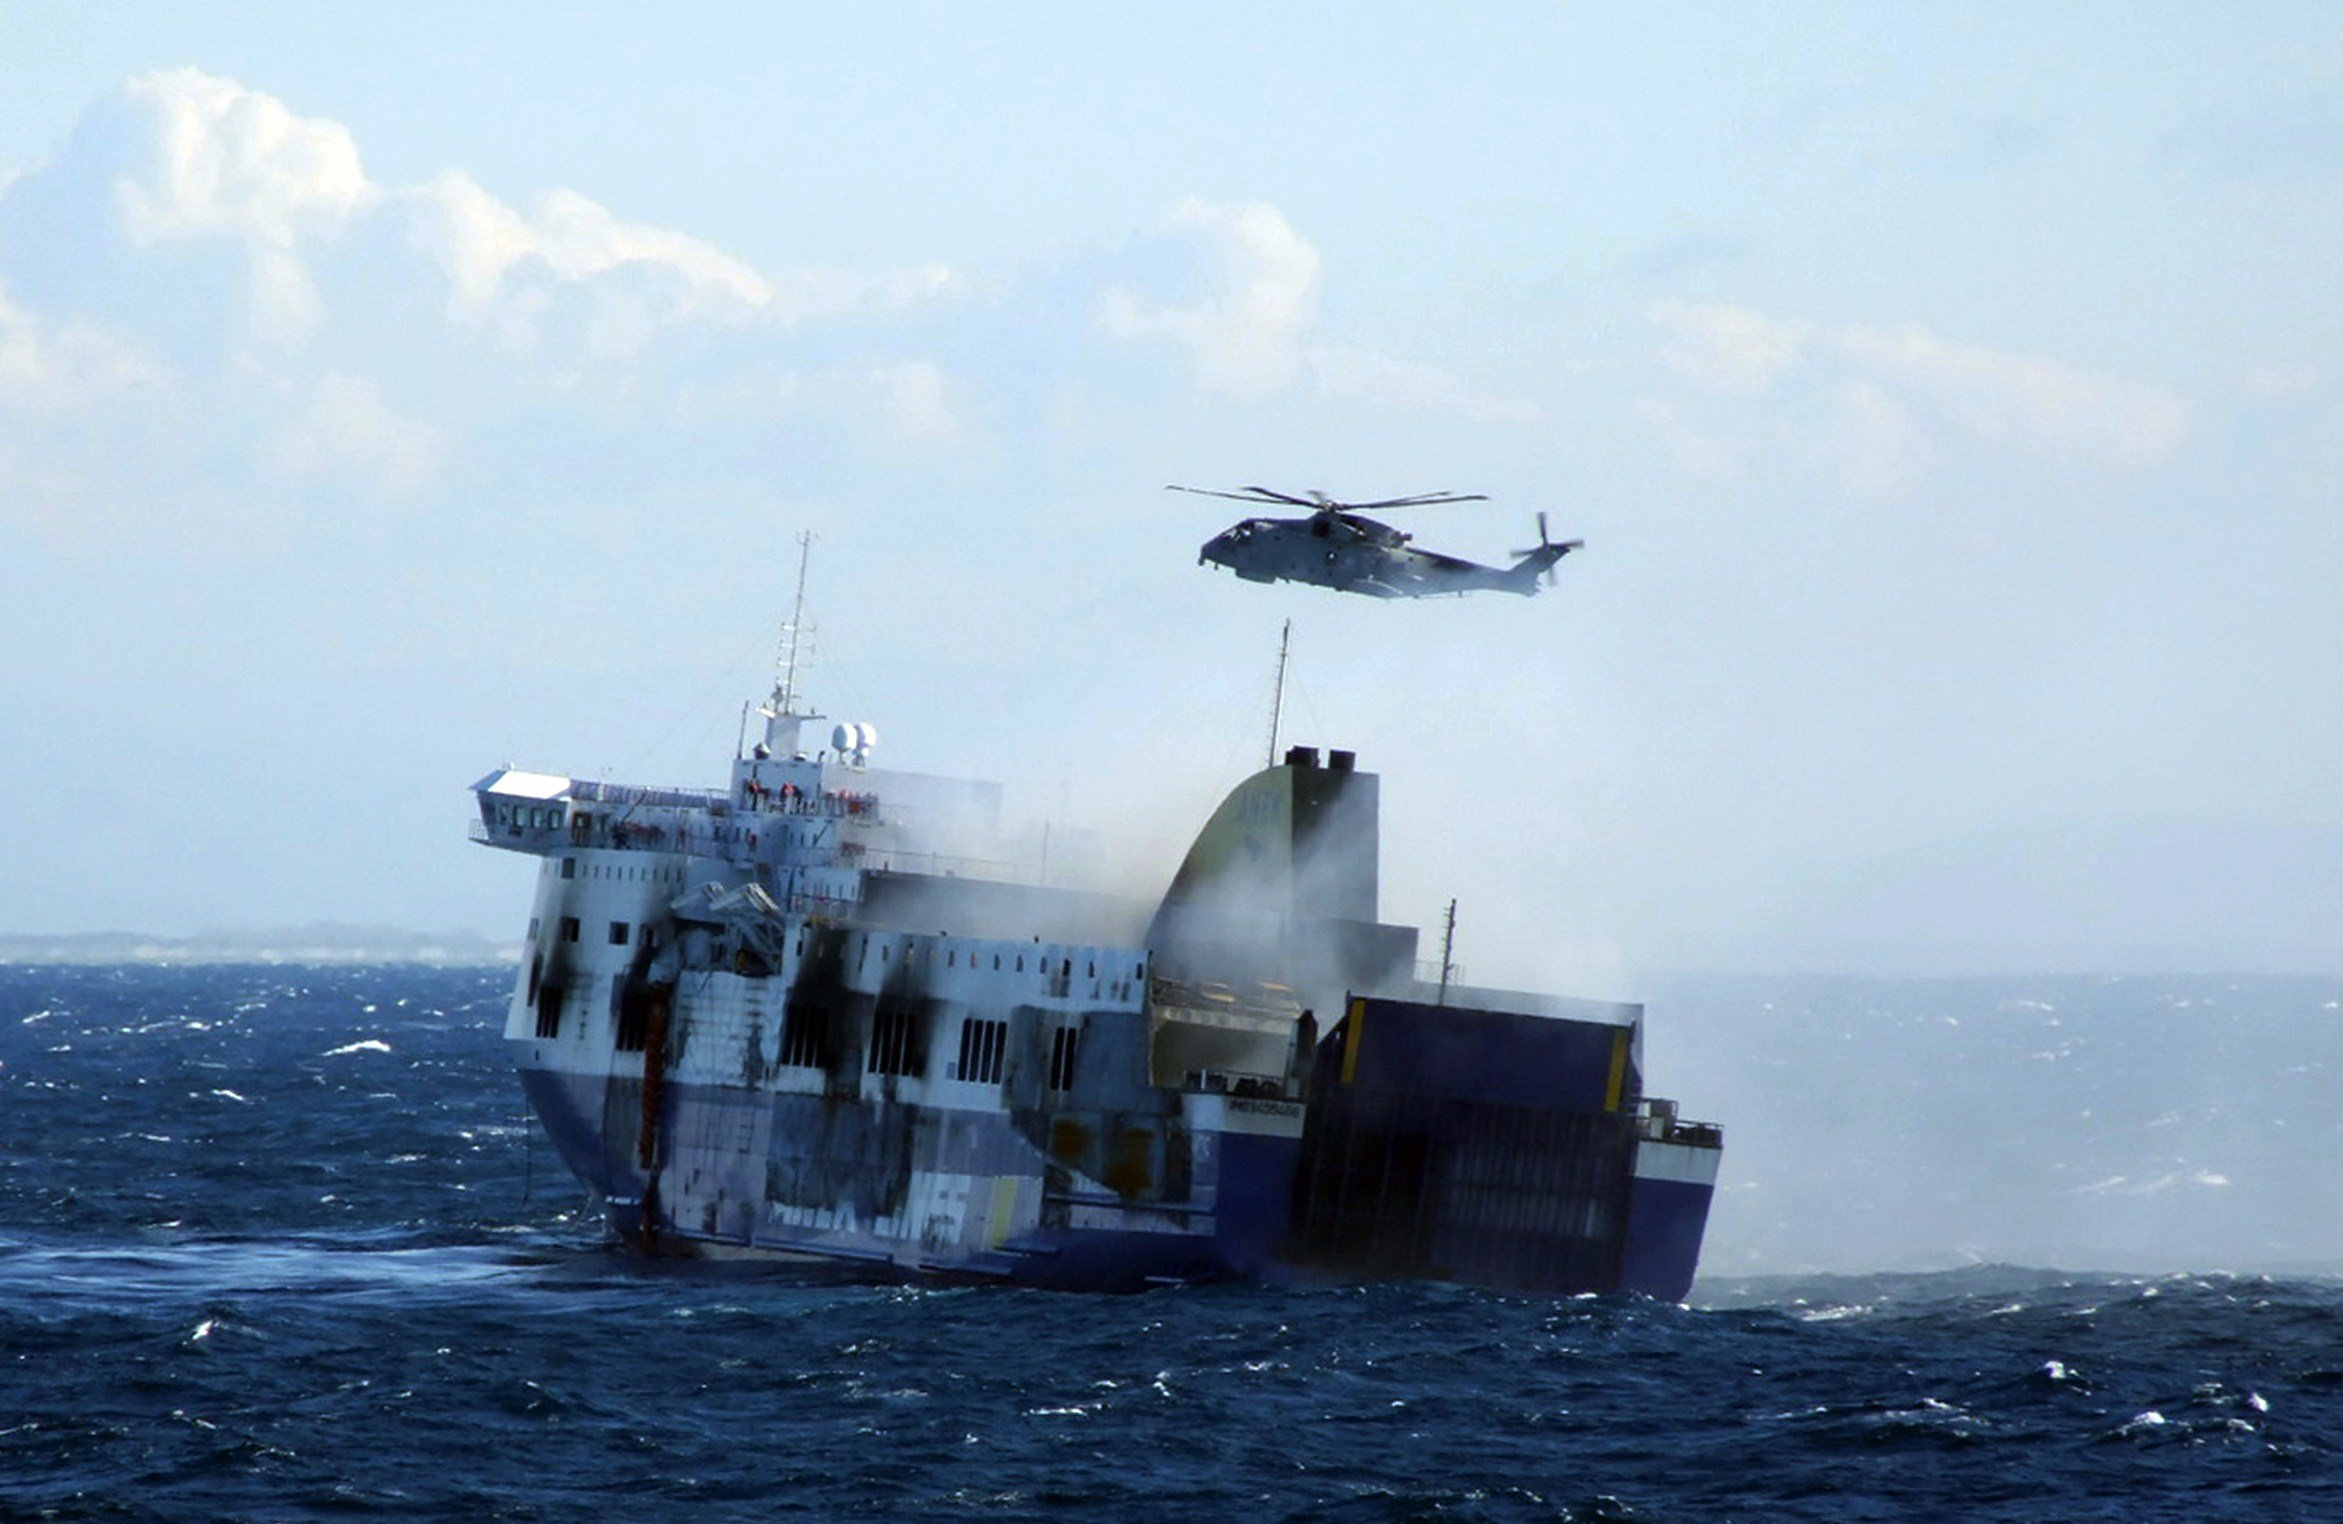 A rescue operation of the burned ferry  Norman Atlantic  adrift in the Adriatic Sea off Albania on Dec. 29, 2014.